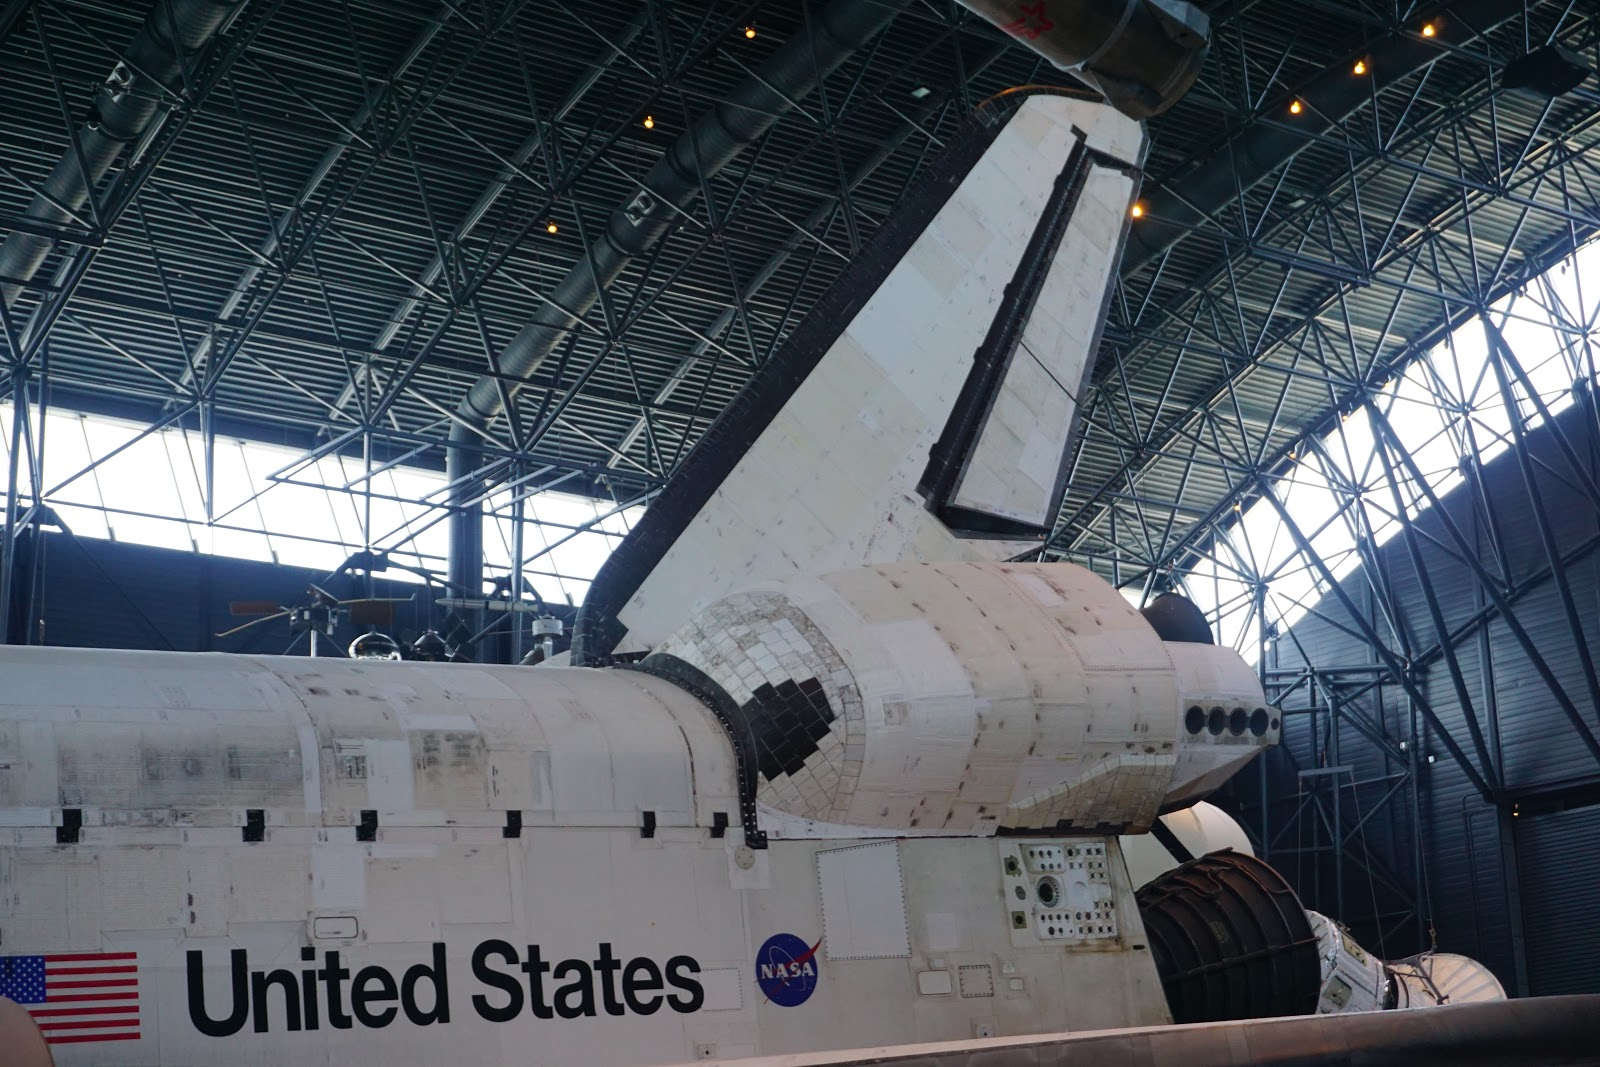 E21S: Space Shuttle Discovery in Steven F Udvar Hazy Center